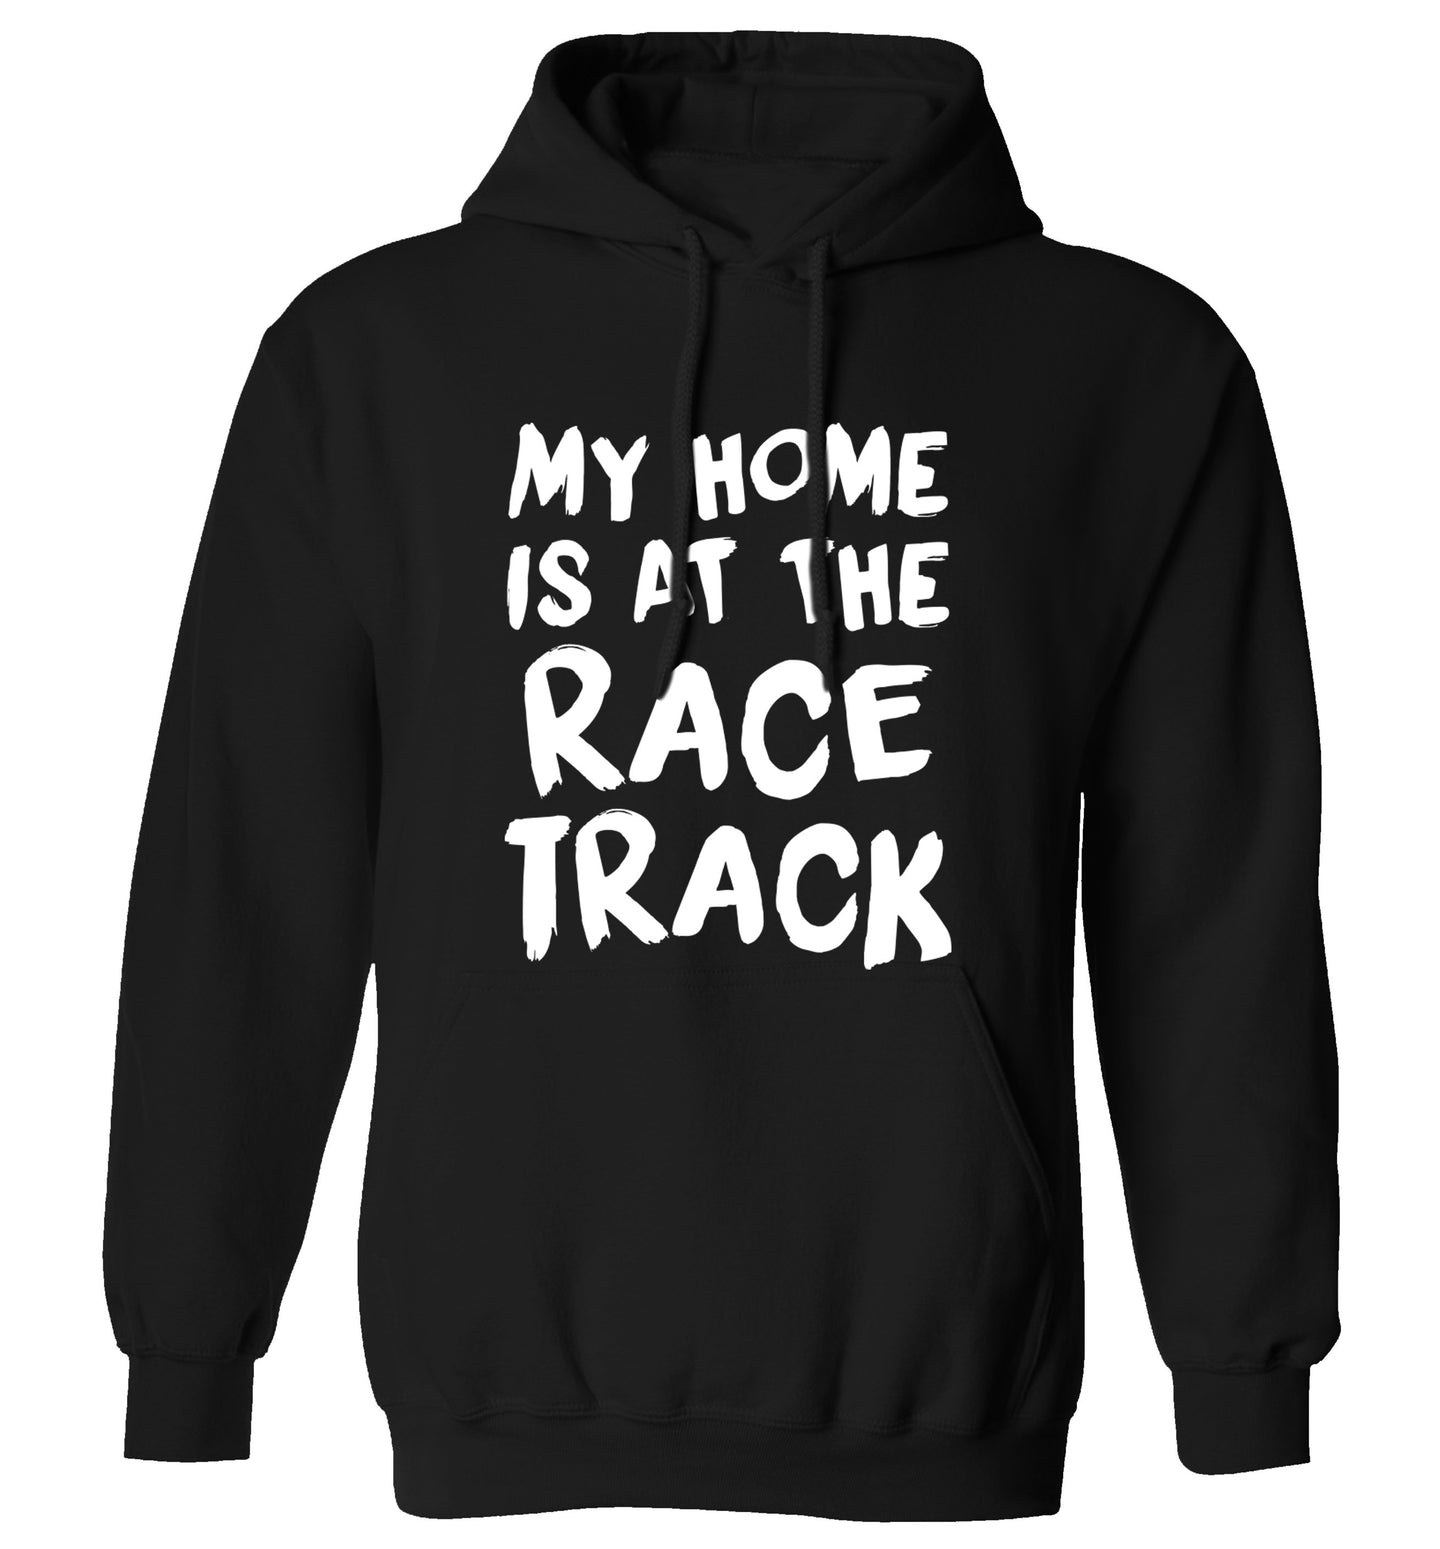 My home is at the race track adults unisex black hoodie 2XL